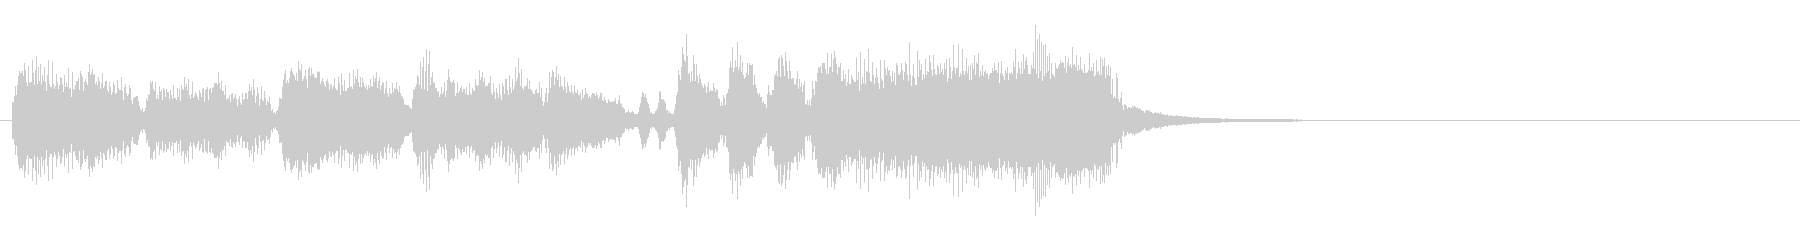 Wedding and couple birth! Fanfare's unreproduced waveform